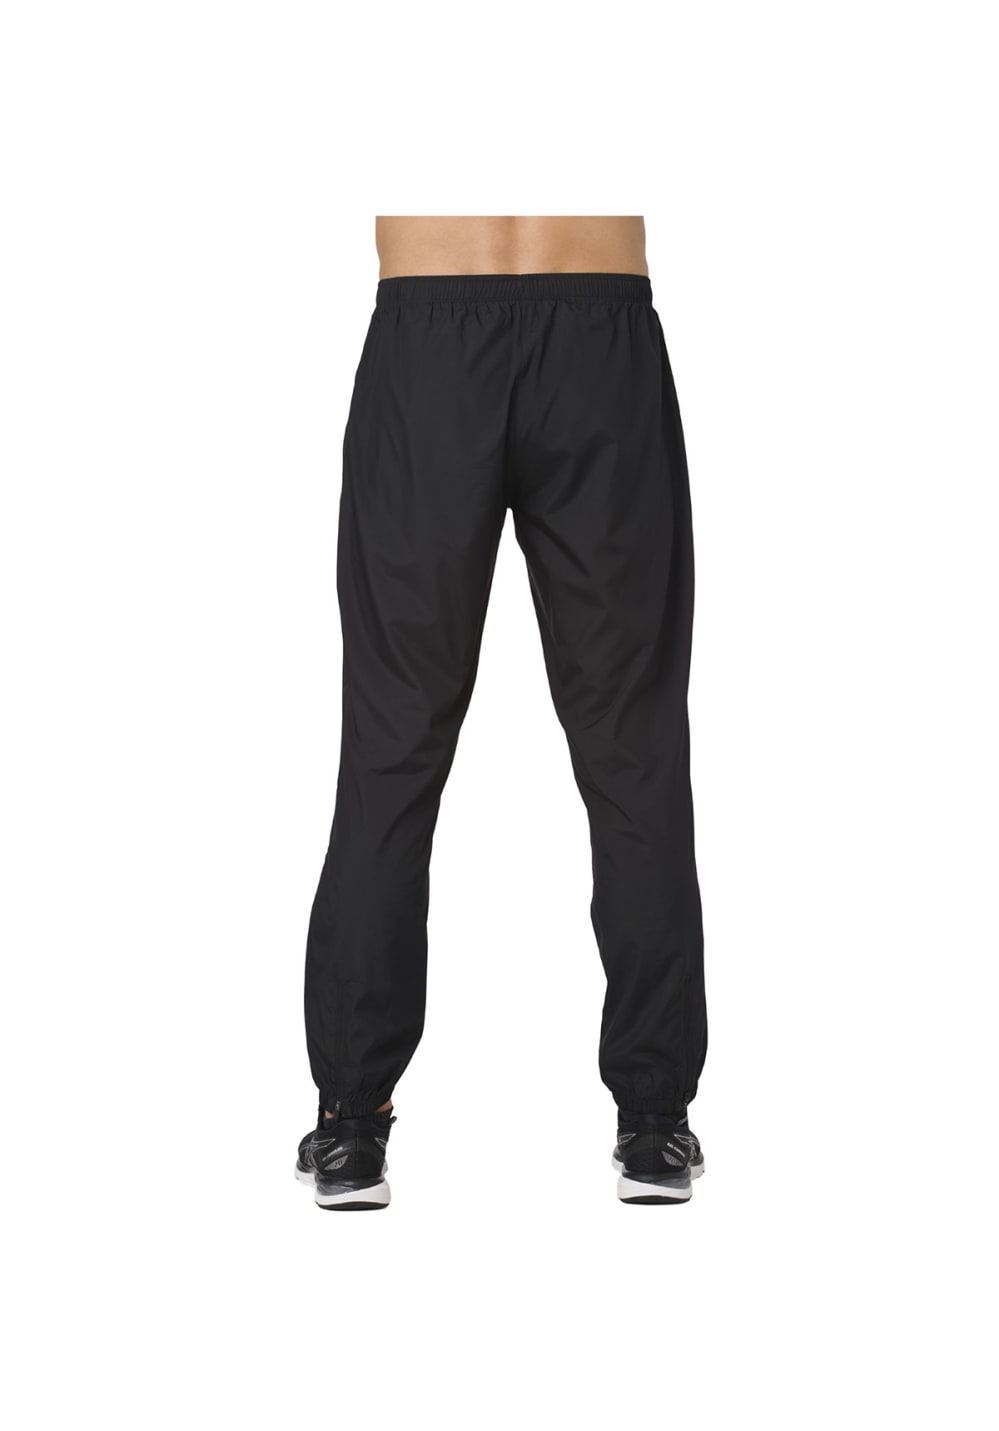 a2e3380e2a ... ASICS Silver Woven Pant - Running trousers for Men - Black. Back to  Overview. 1; 2; 3. Previous. Next